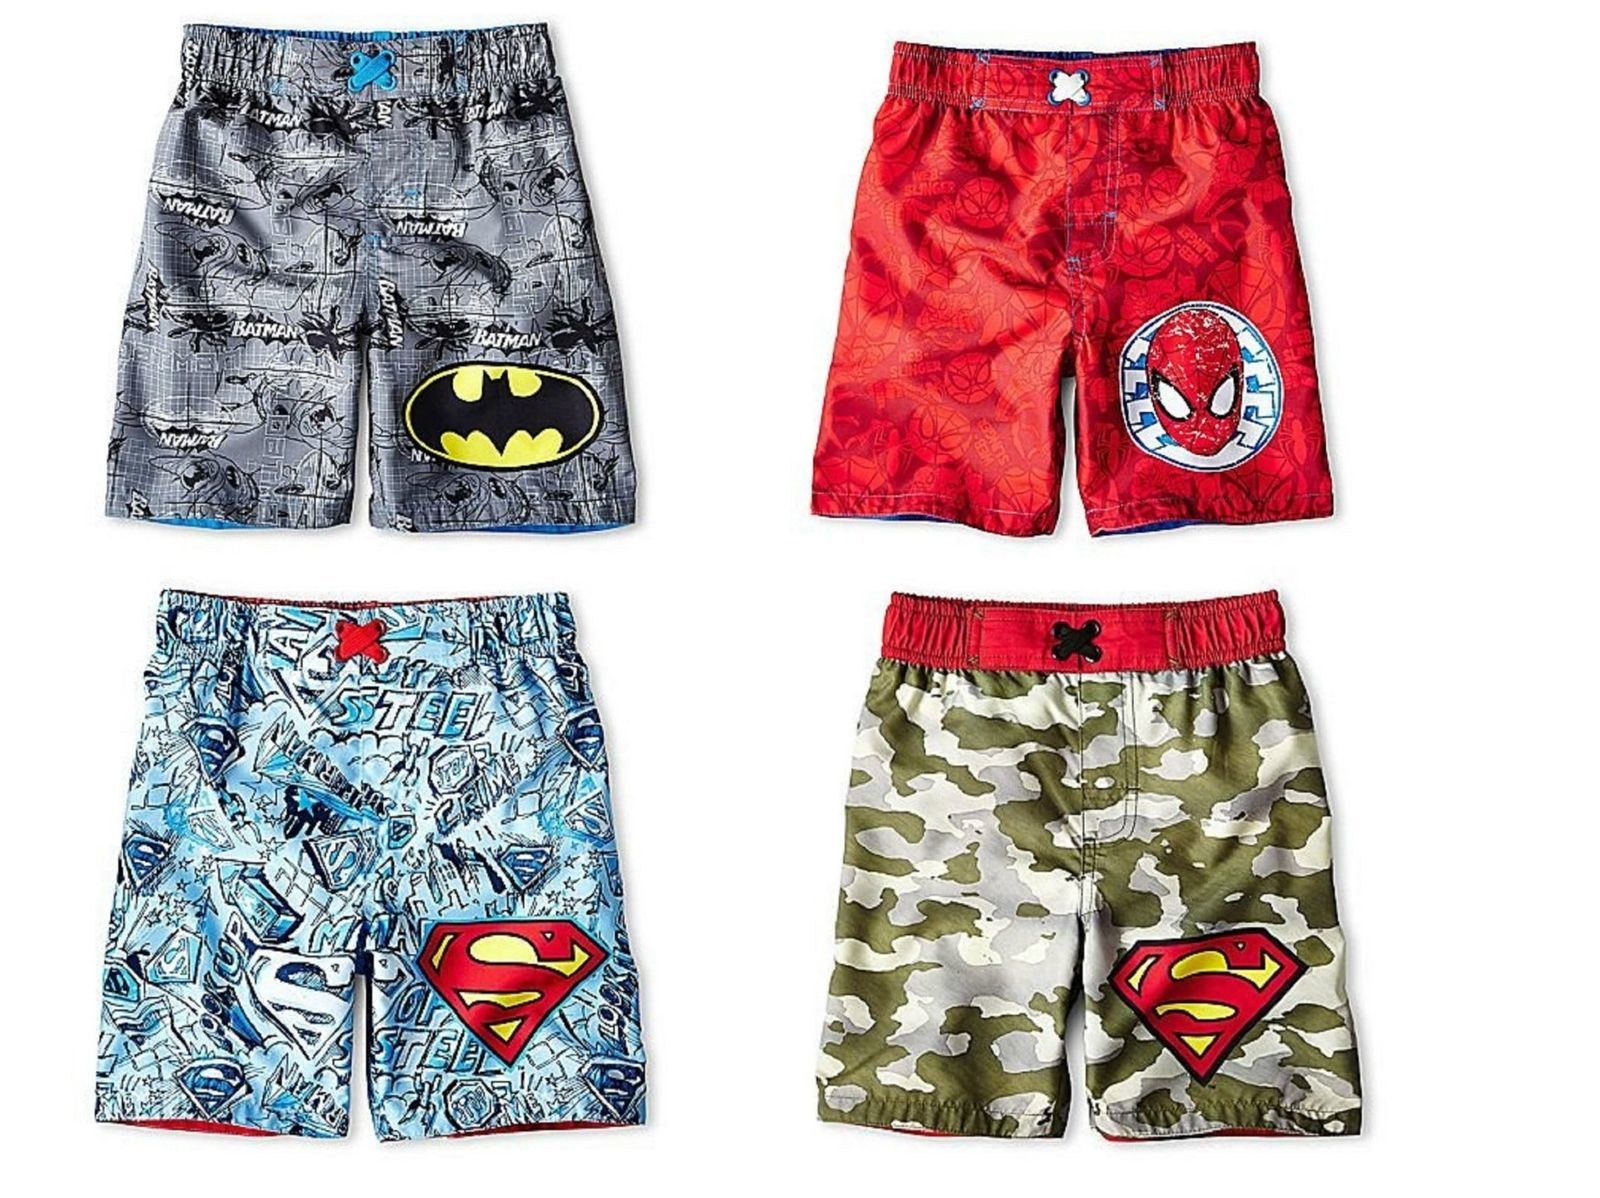 Infant Toddler Boy's Superhero Swim Bottoms Trunks Shorts Bathing Suit UPF 50+